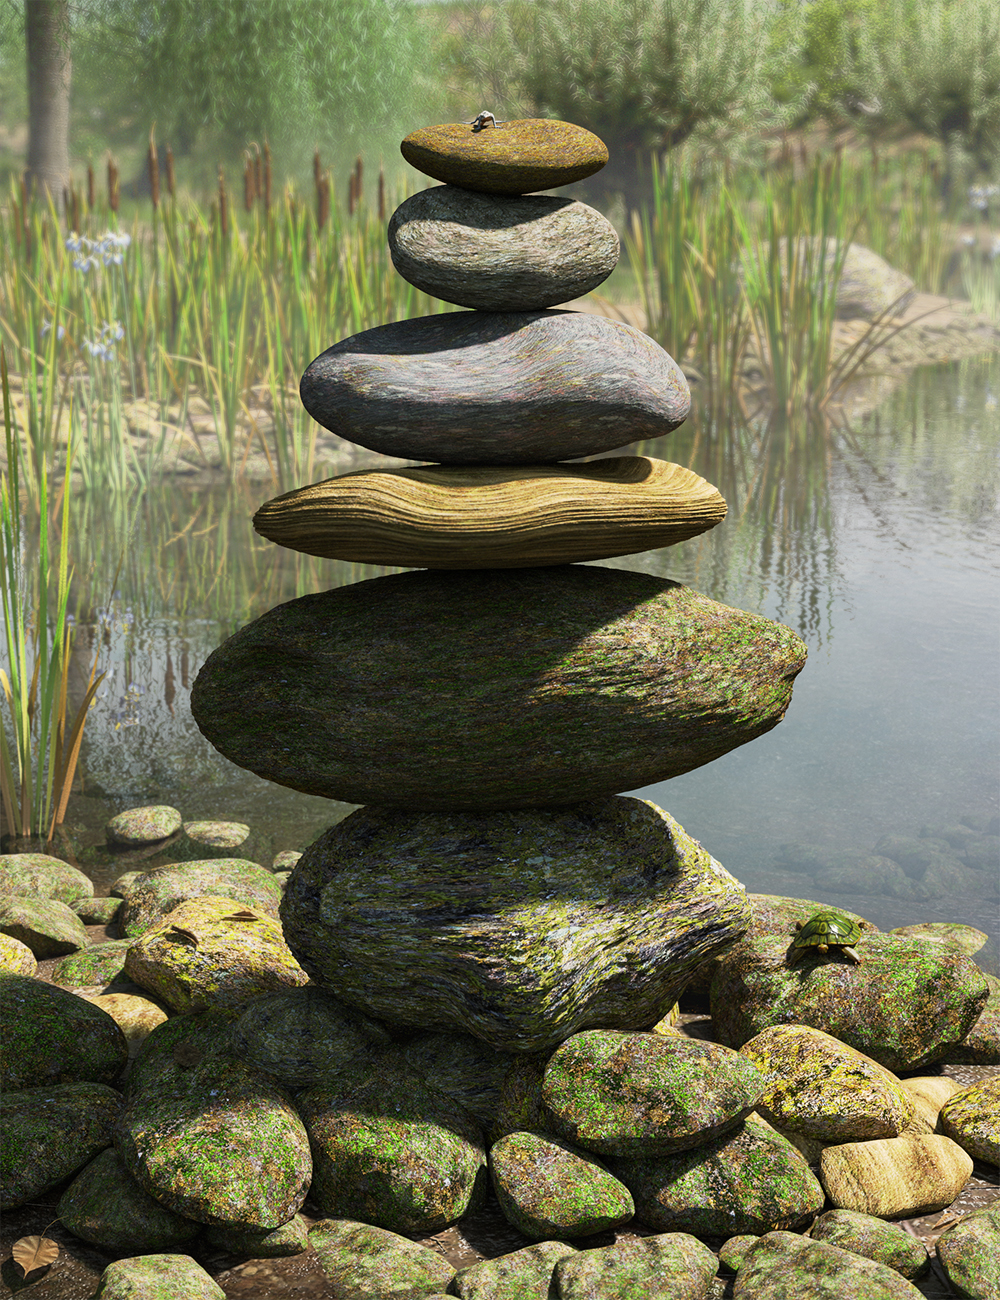 Ancient Stones - Rock'n'Roll and Moss Shaders by: MartinJFrost, 3D Models by Daz 3D